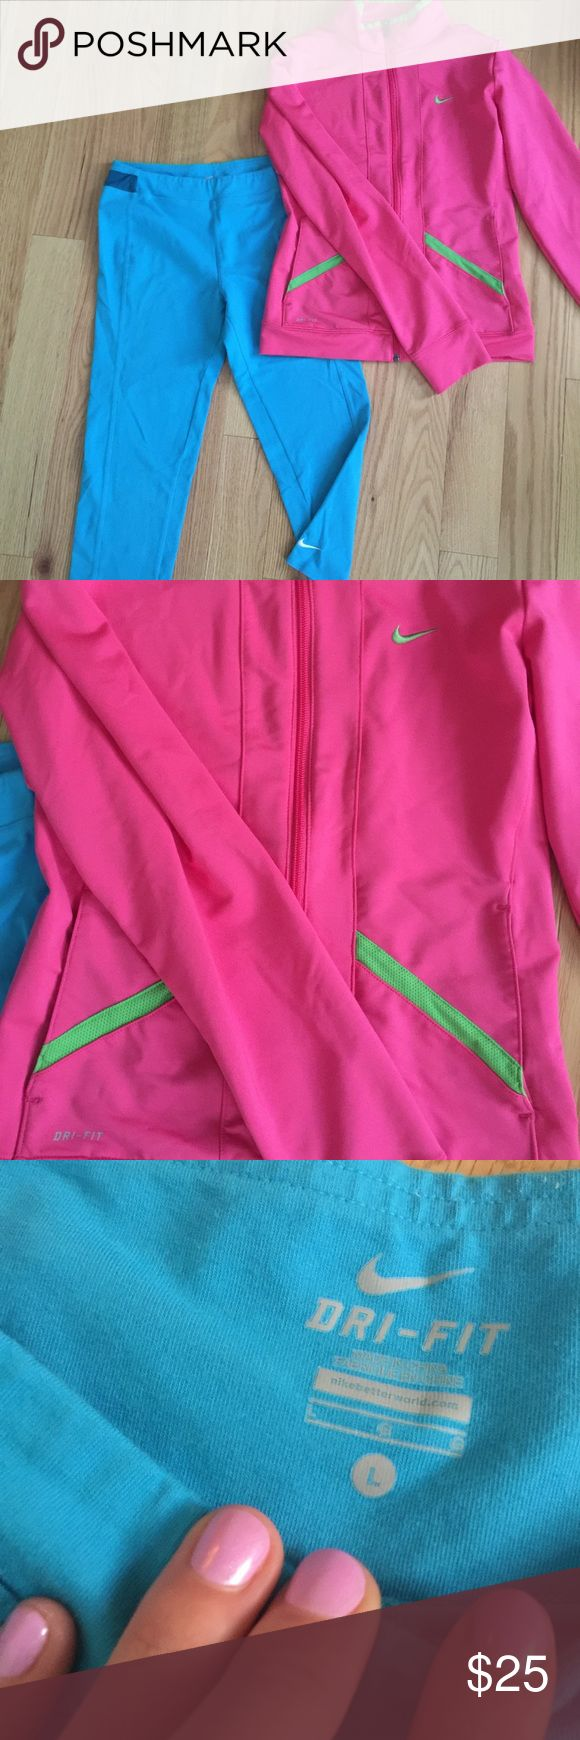 Nike bundle Size large kids Nike! Turquoise yoga leggings and pink/green zip up sweatshirt! EUC looks close to brand new! Please lmk if you have any questions! Fits women's size XS...bottoms fit me and I wear a women's xs or small and the top is too short on me and a bit snug in the shoulders but I usually wear a small or medium in tops. Nike Tops